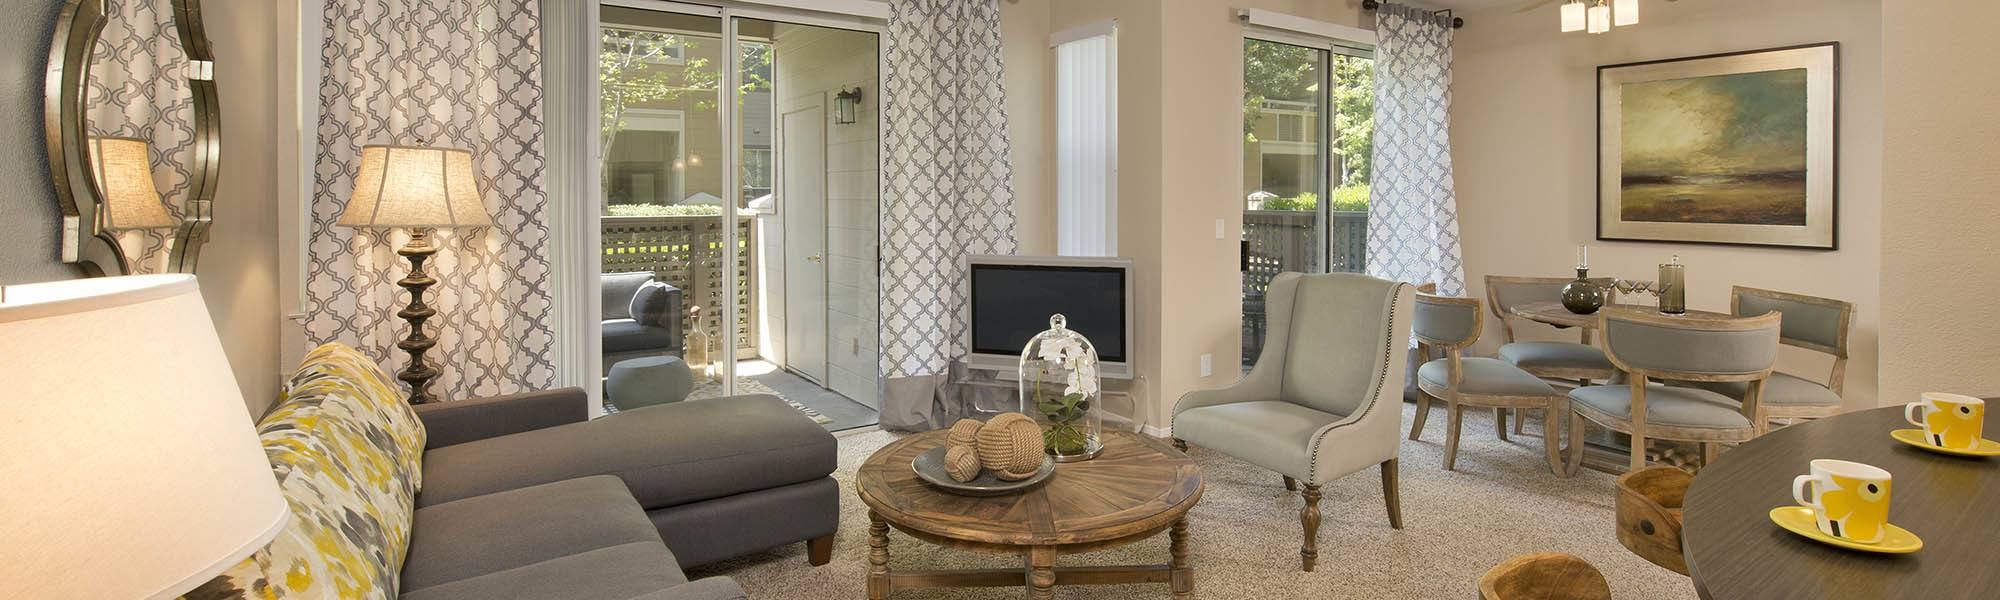 View photos of our luxurious property at Rosewalk in San Jose, CA